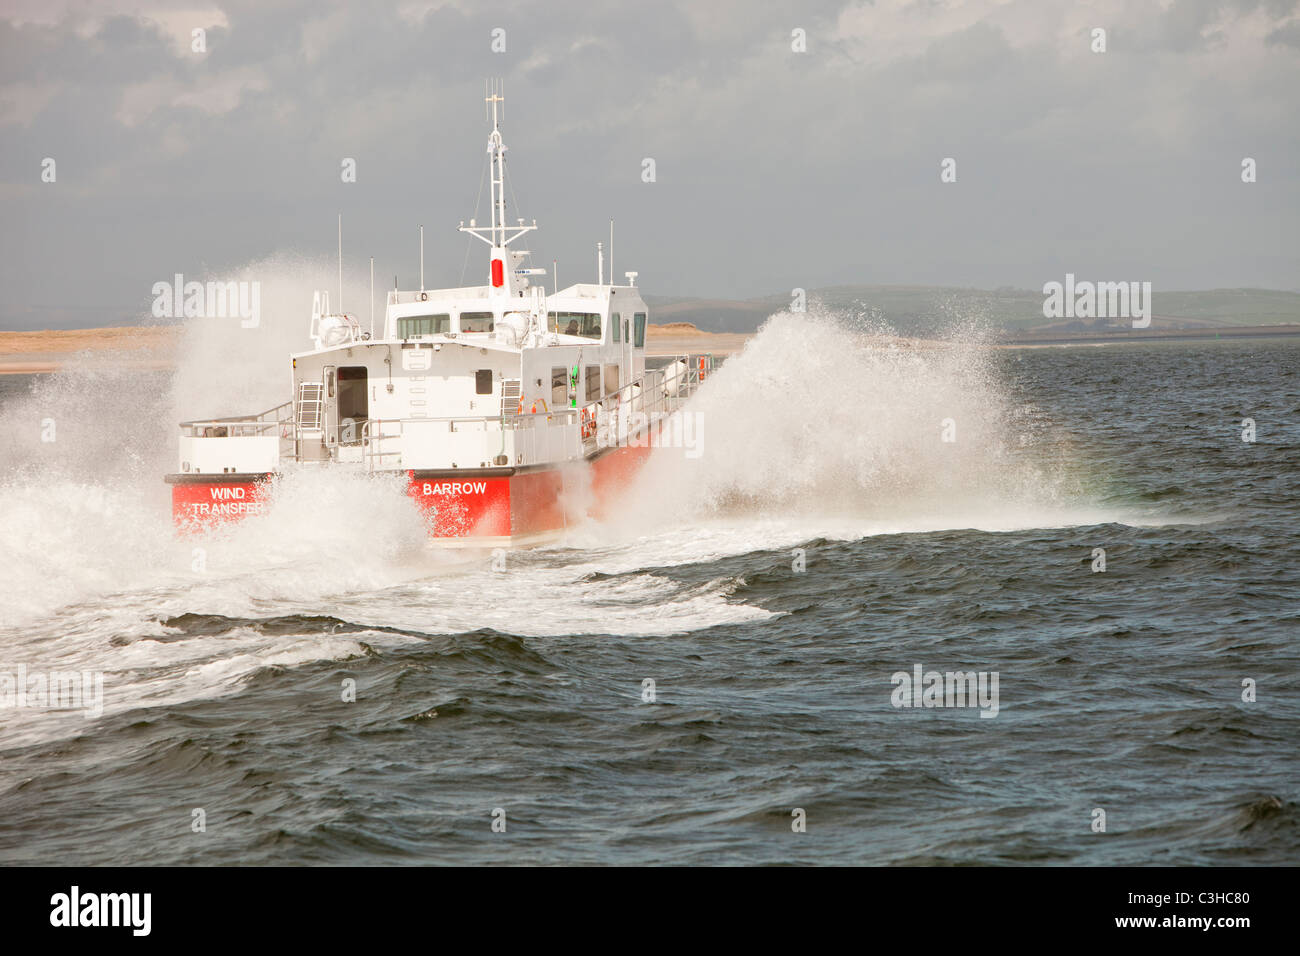 Construction Support Vessel Stock Photos Amp Construction